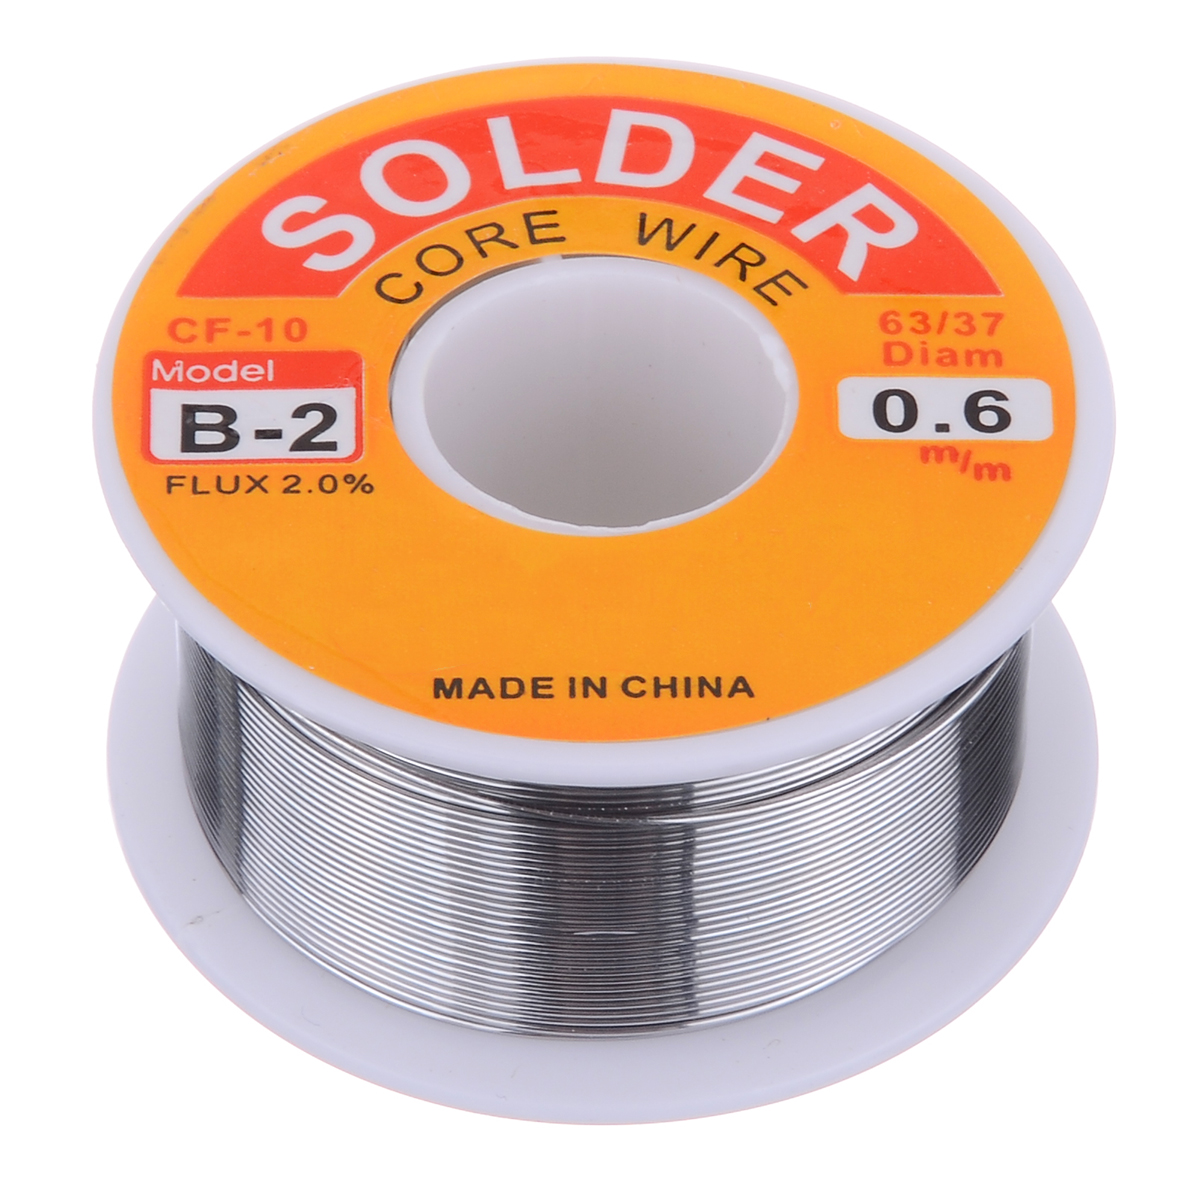 63/37 0.5mm-2.0mm 50g/100g Rosin Core Welding Wires Tin Lead Solder Iron Wire Reel Soldering Tool Supplies